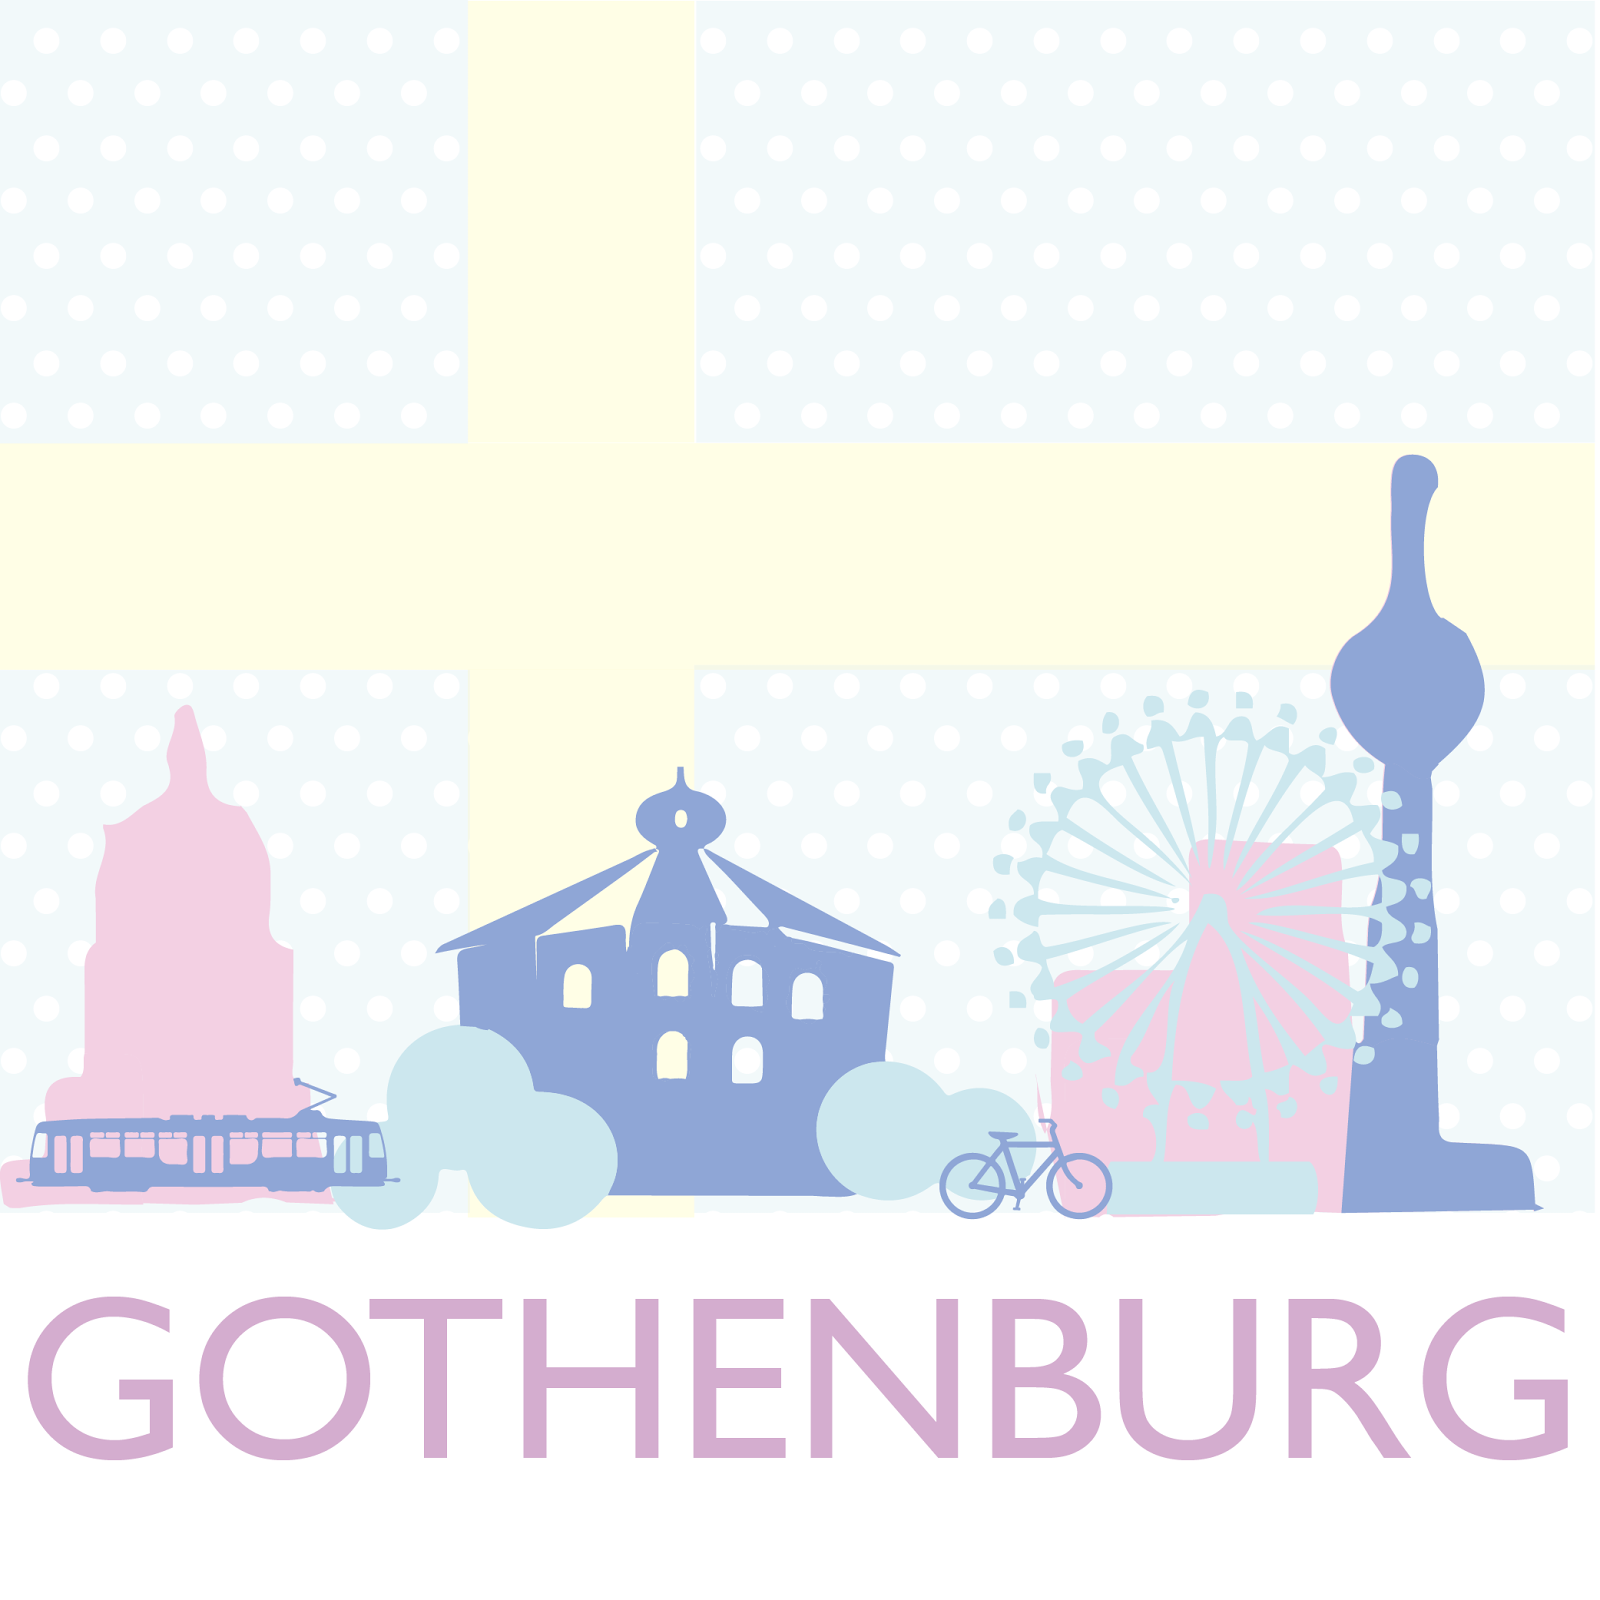 Gothenburg shops by Torie Jayne